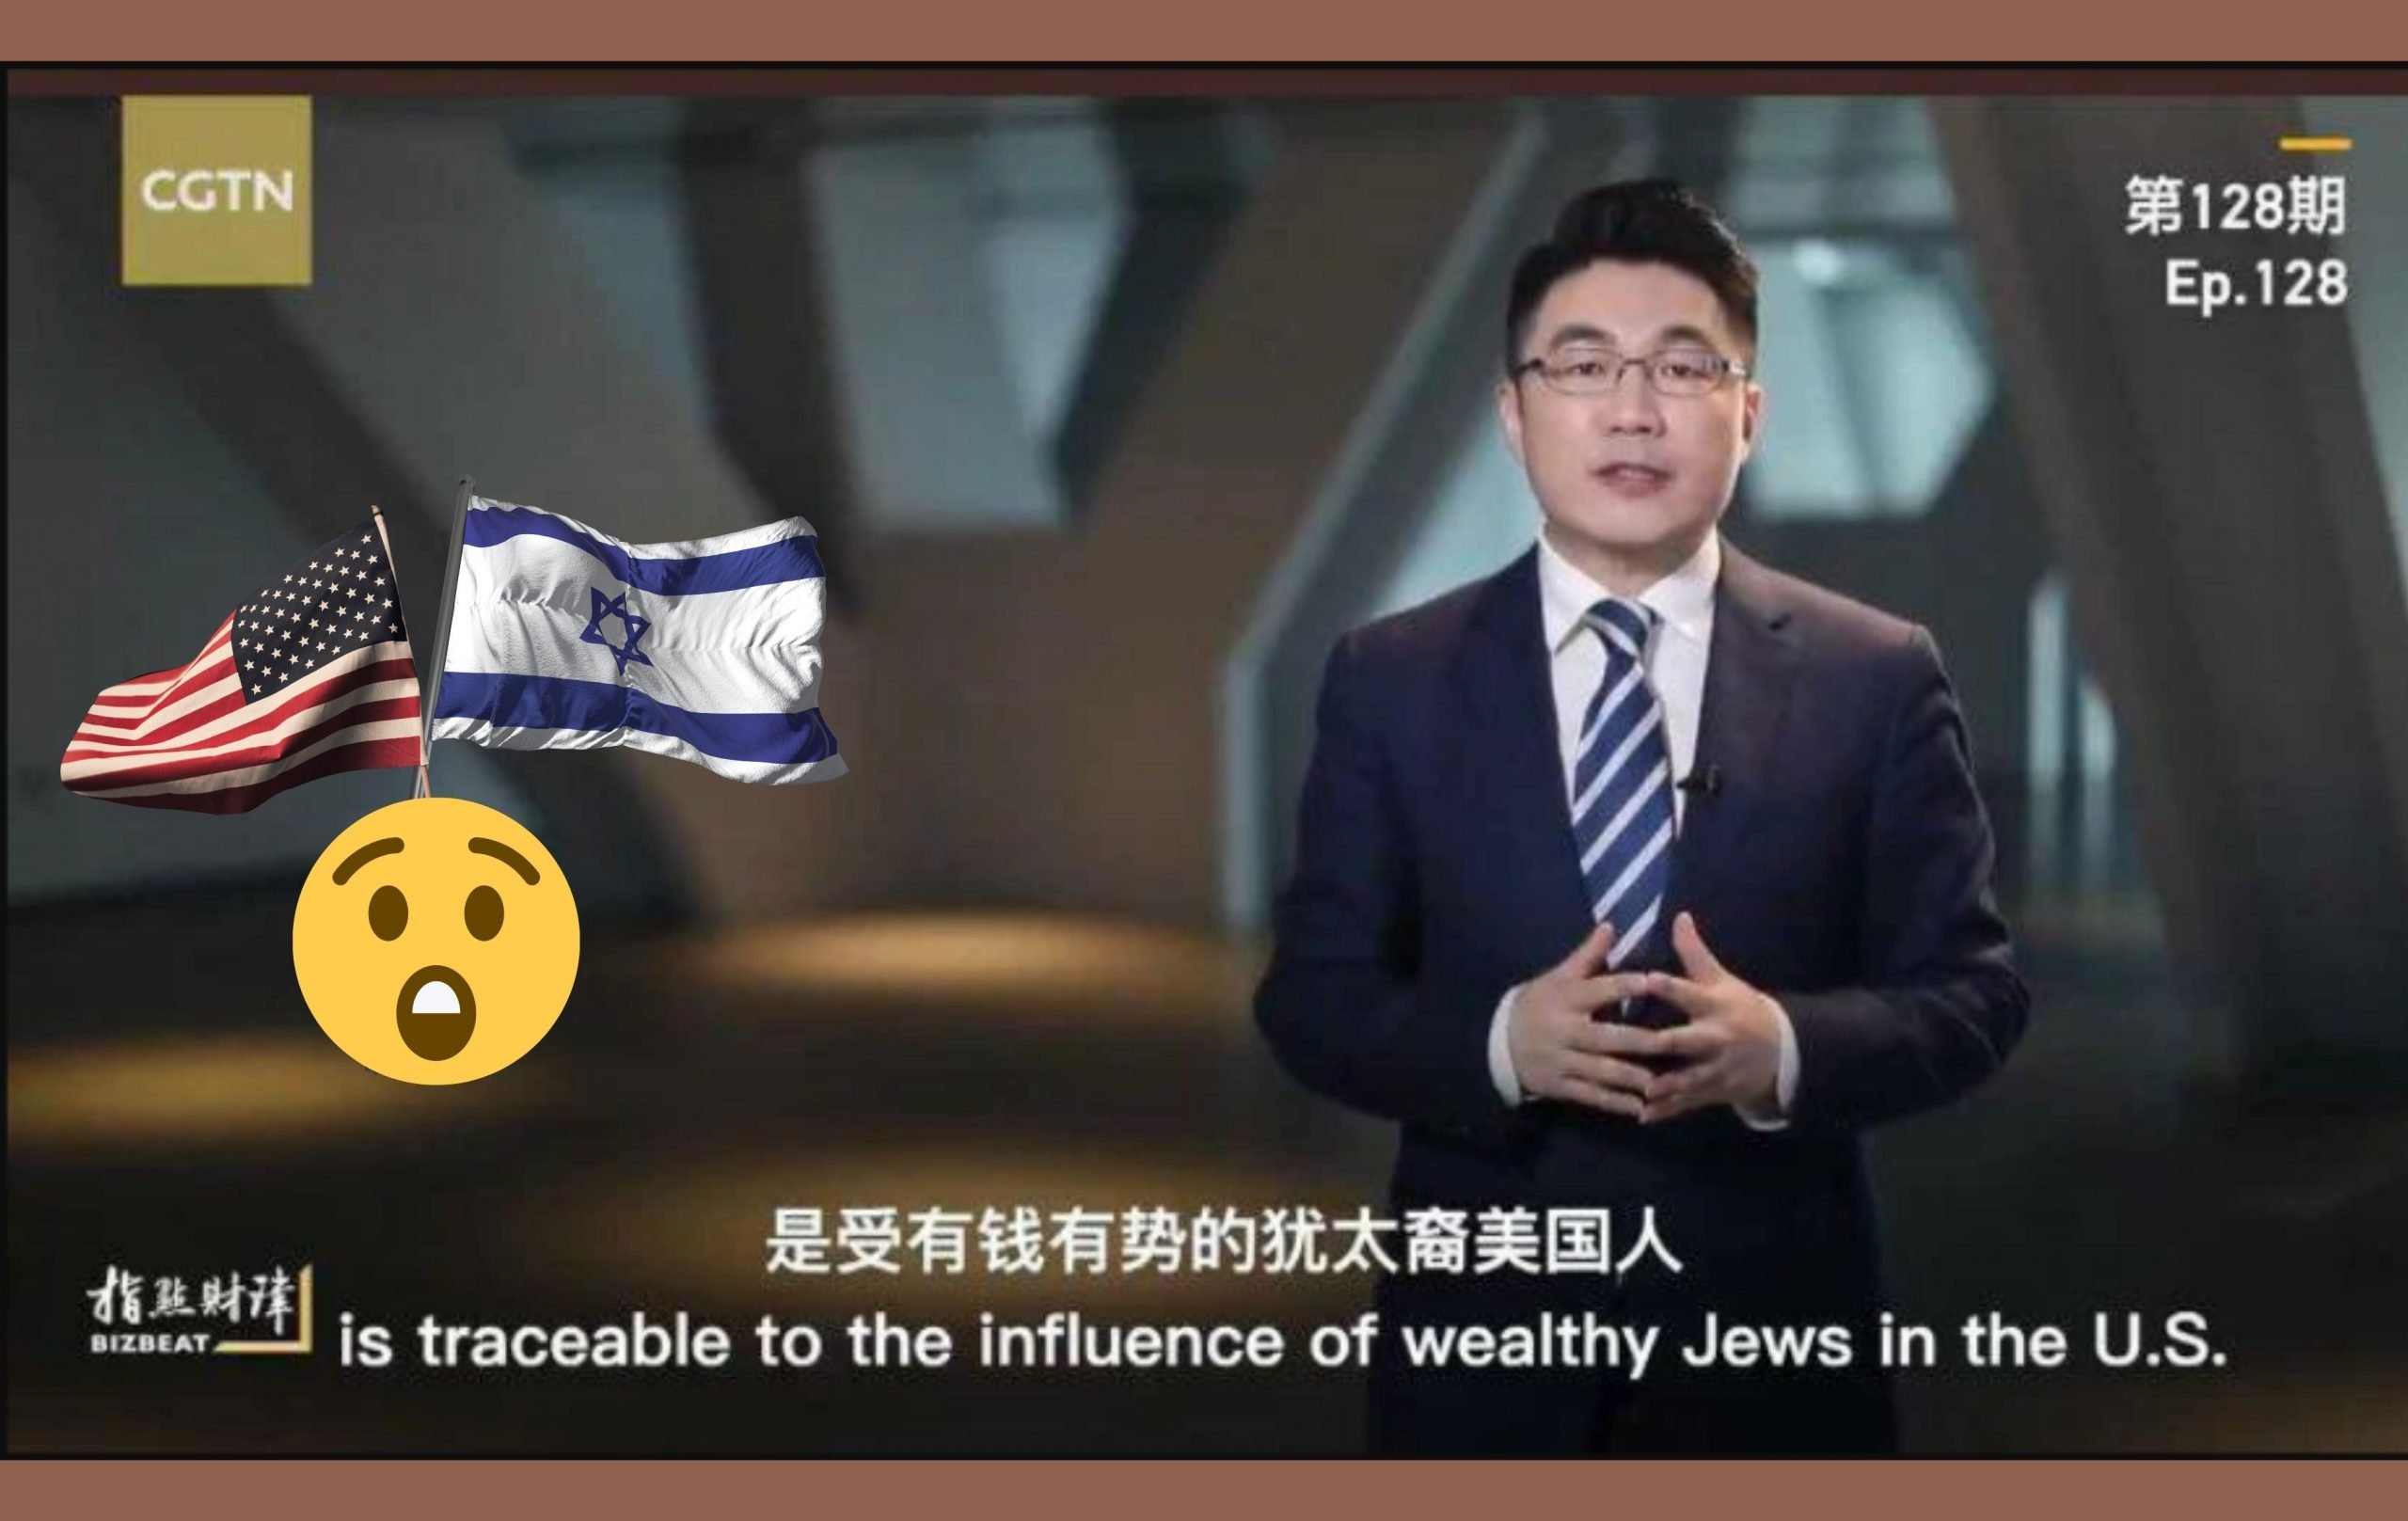 Chinese Media: US Supports Israel Because of Wealthy U.S. Jews